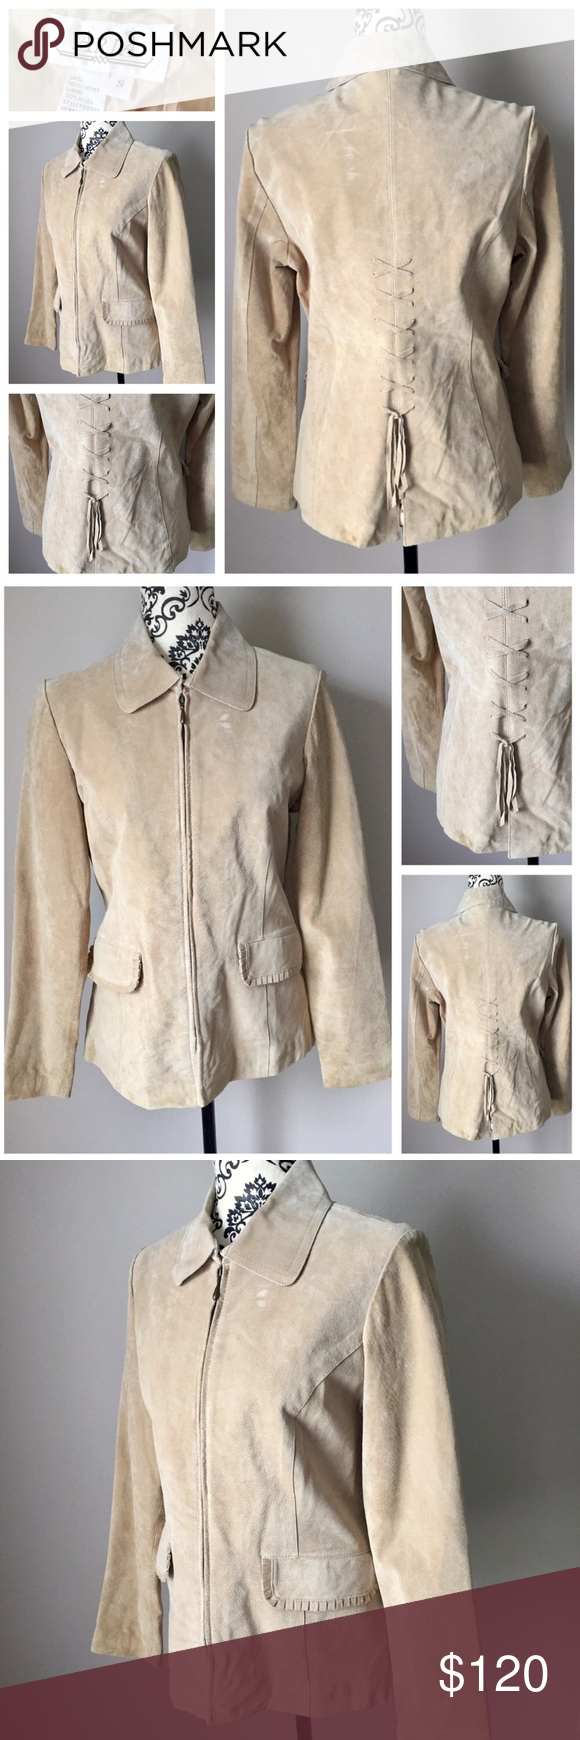 🎉 Aria 100% leather light tan jacket lace up back Aria 100% leather light tan jacket. Antique gold zipper details. Fully lined. Fun and unique lace-up back. Size small fits true to size. Adorable scalloped edge pockets. Gently pre-loved with some signs of wear as shown in photos. I believe it just needs to be cleaned and would look like new! Zipper front with hook and eye closure at neck. This is a great piece for fall and winter to add some sass to any look! Looks adorable with skinny…